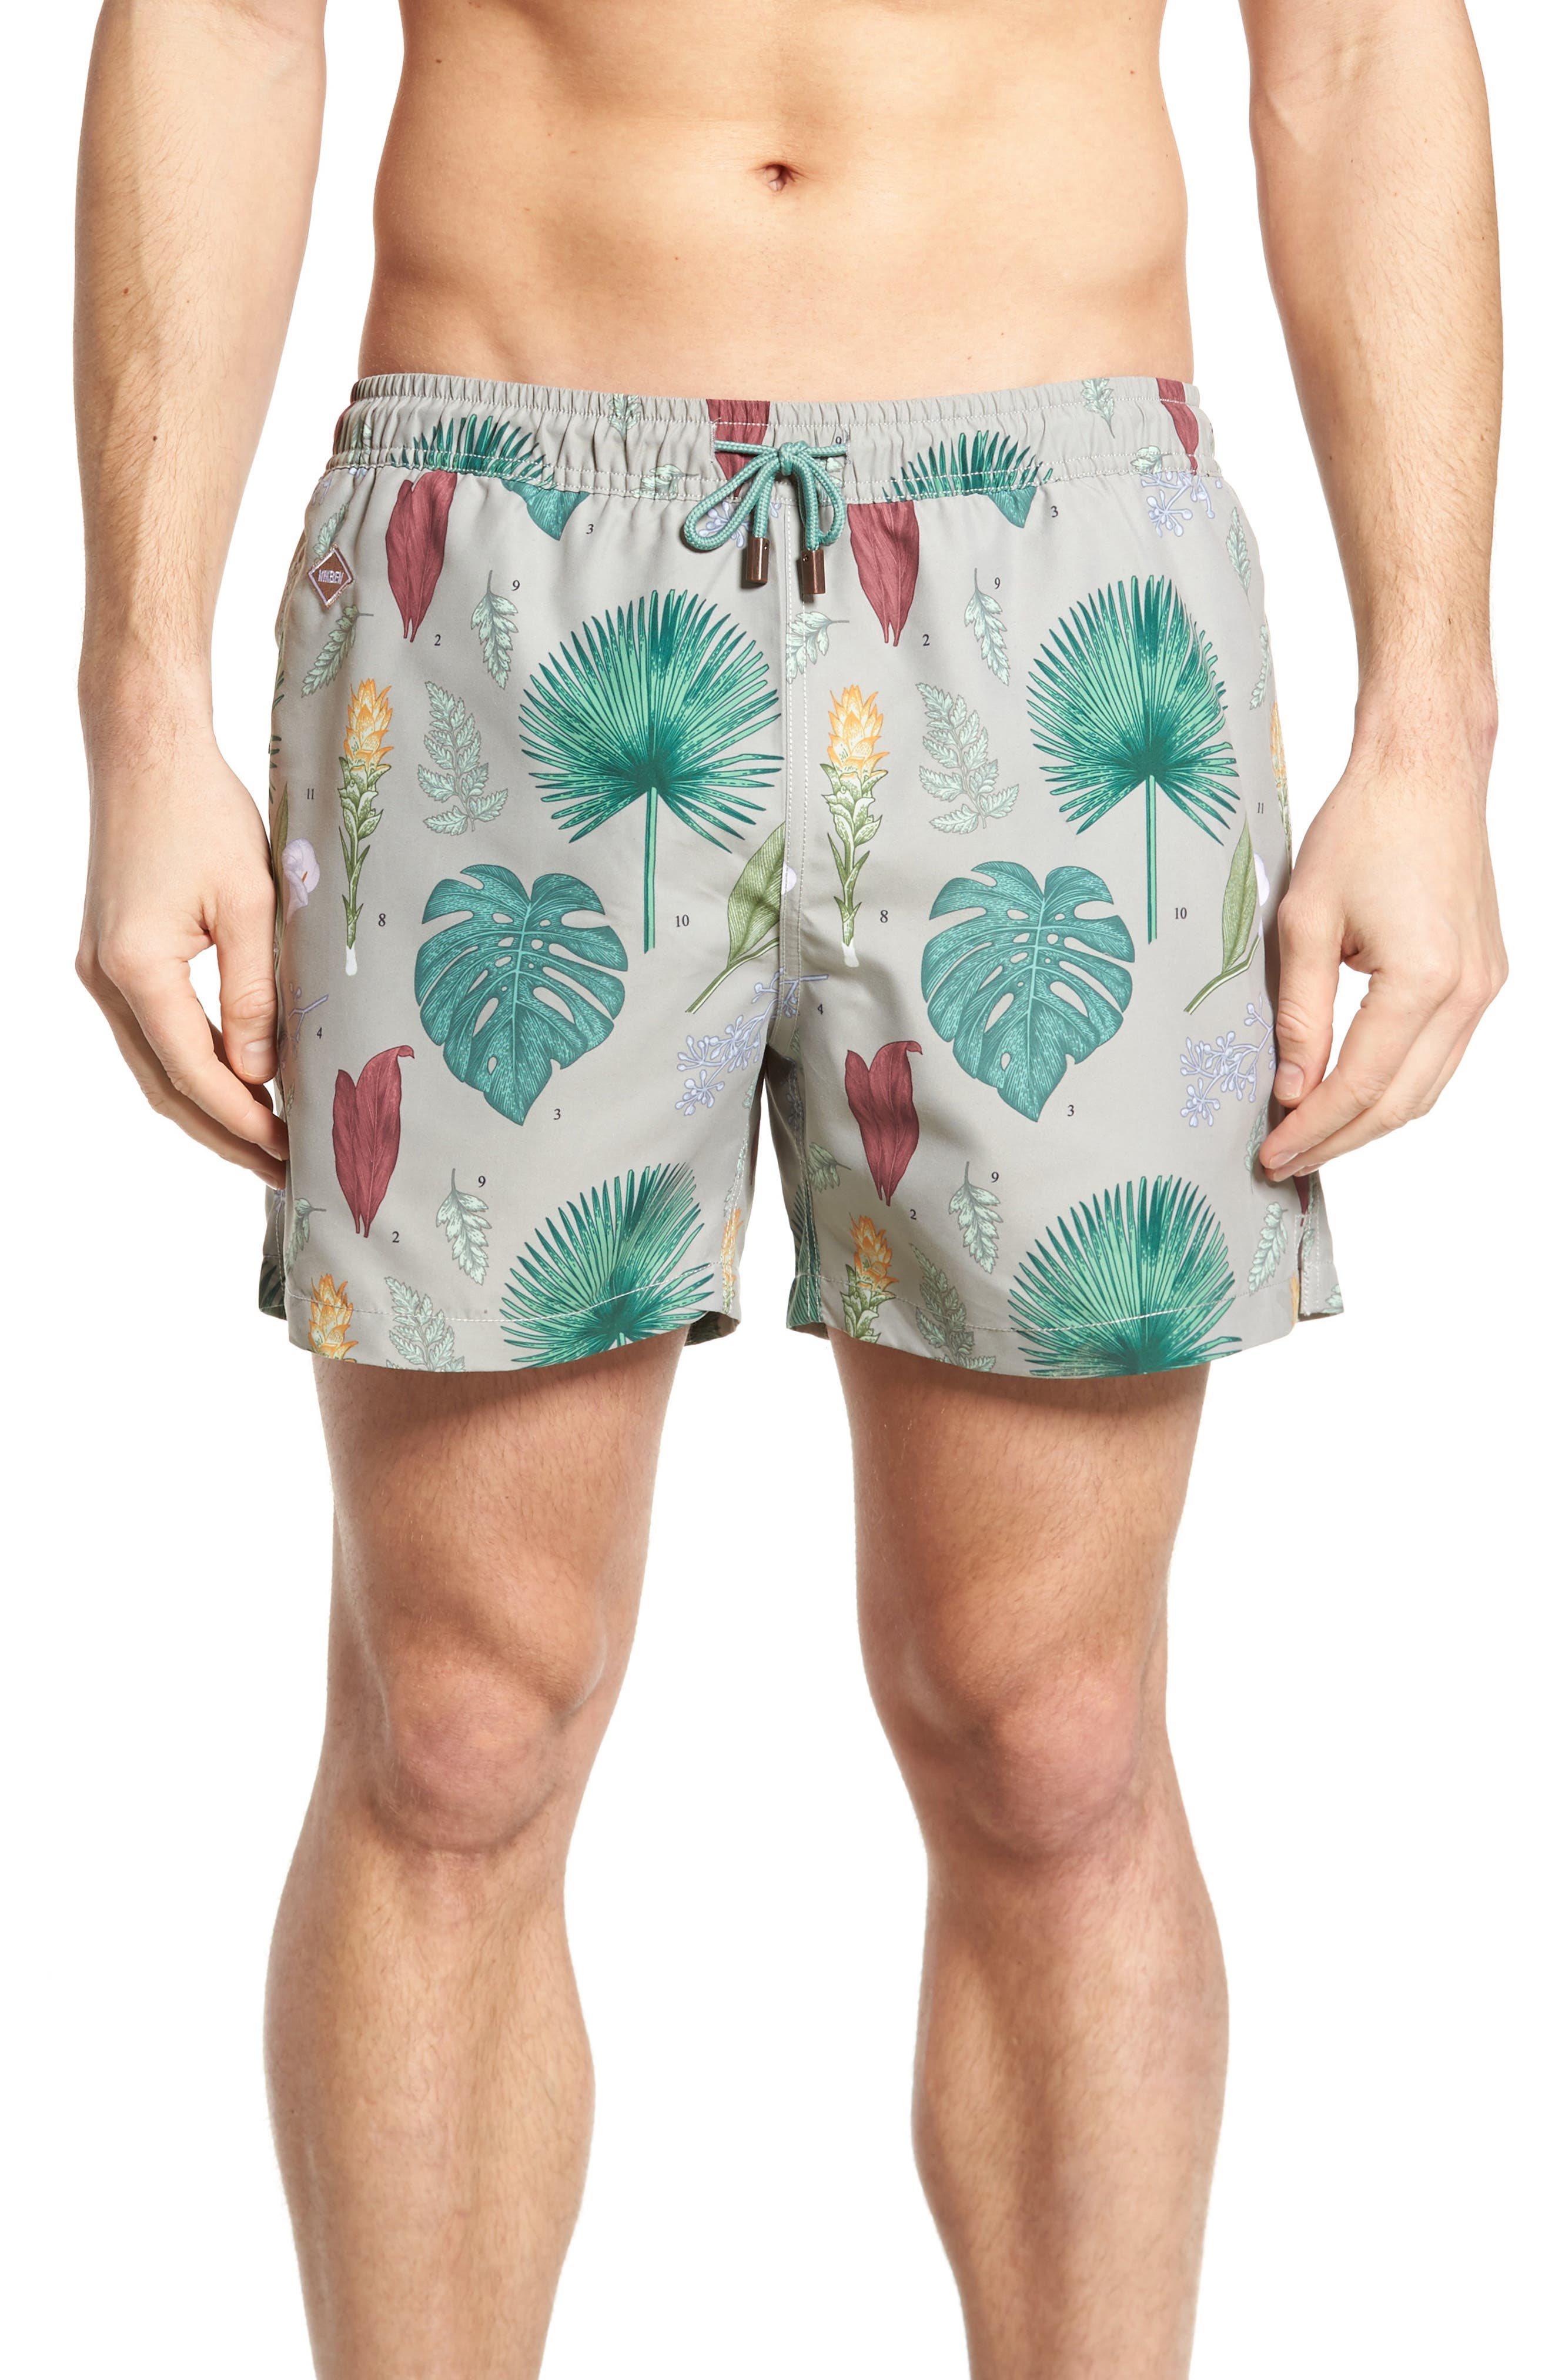 Flower Power Slim Fit Swim Trunks,                             Main thumbnail 1, color,                             300